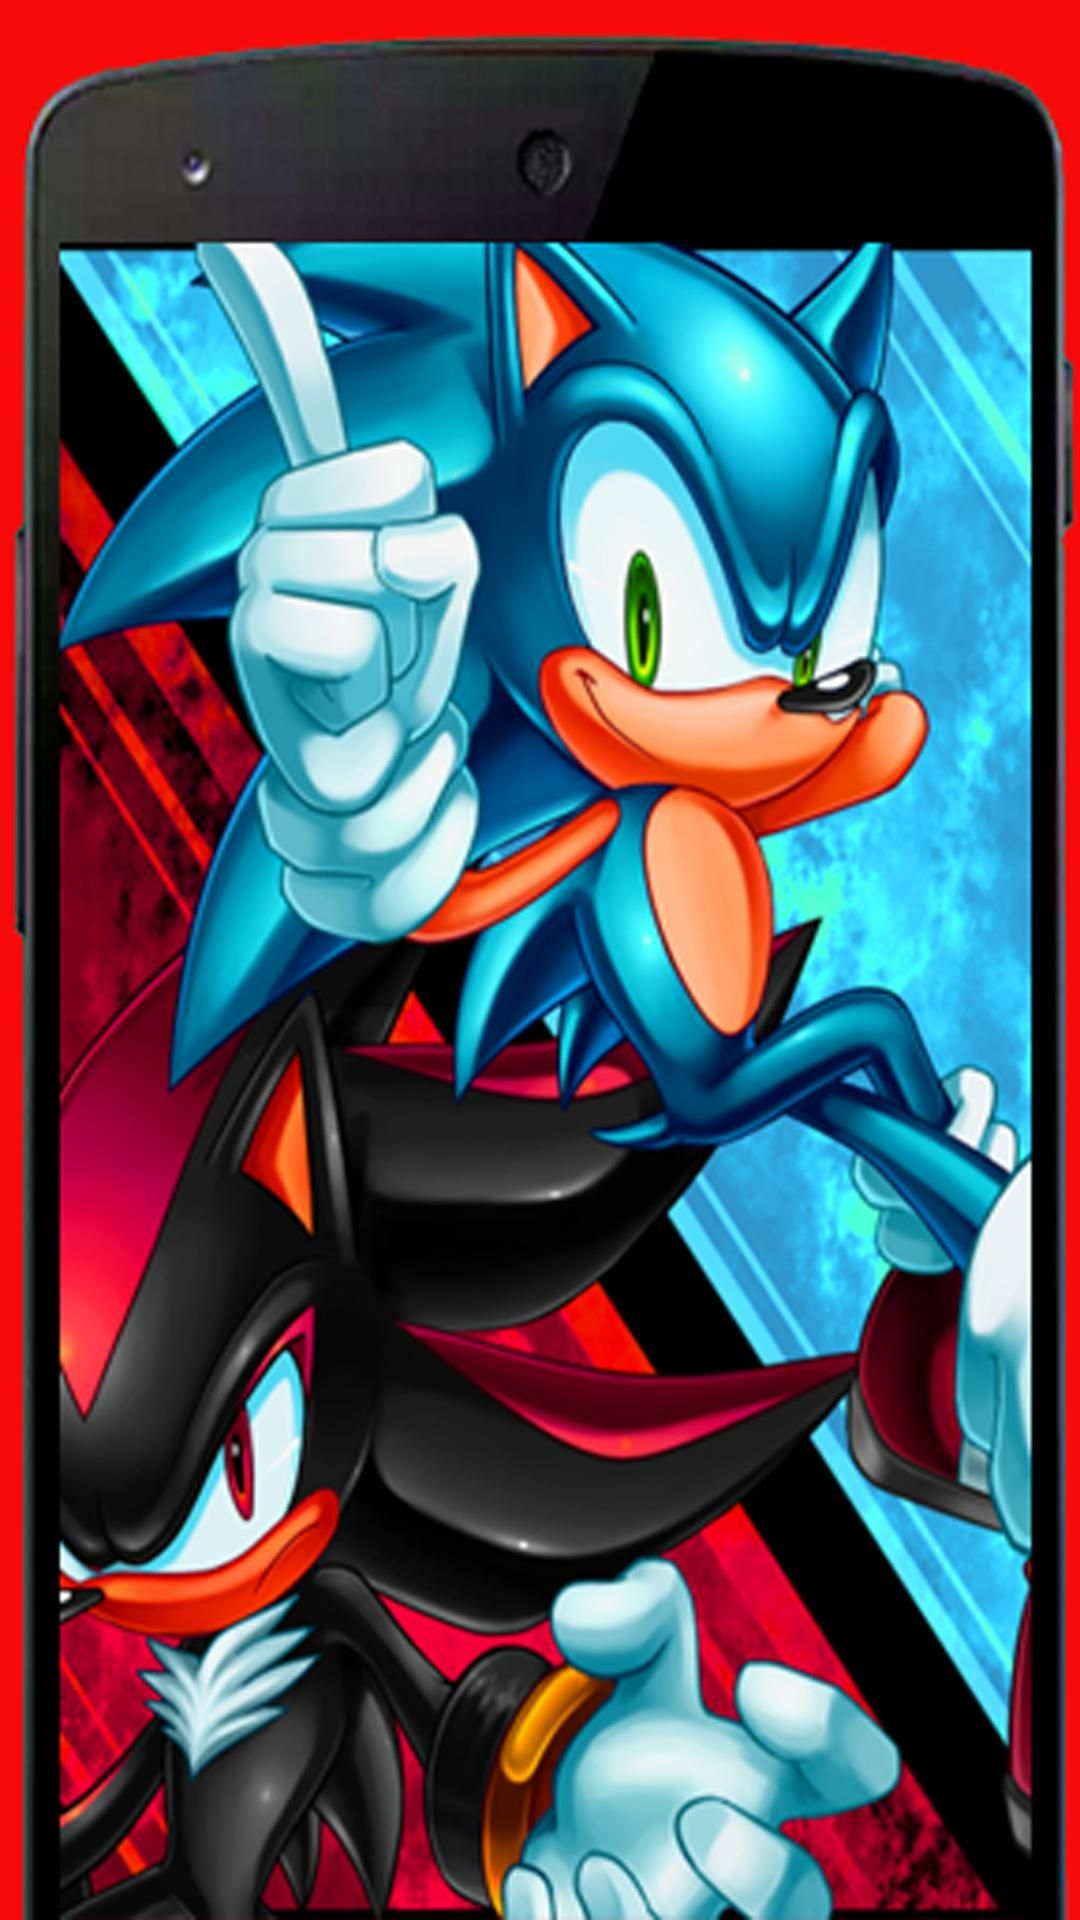 Sonic Wallpaper Iphone In 2020 Sonic Sonic And Shadow Sonic The Hedgehog